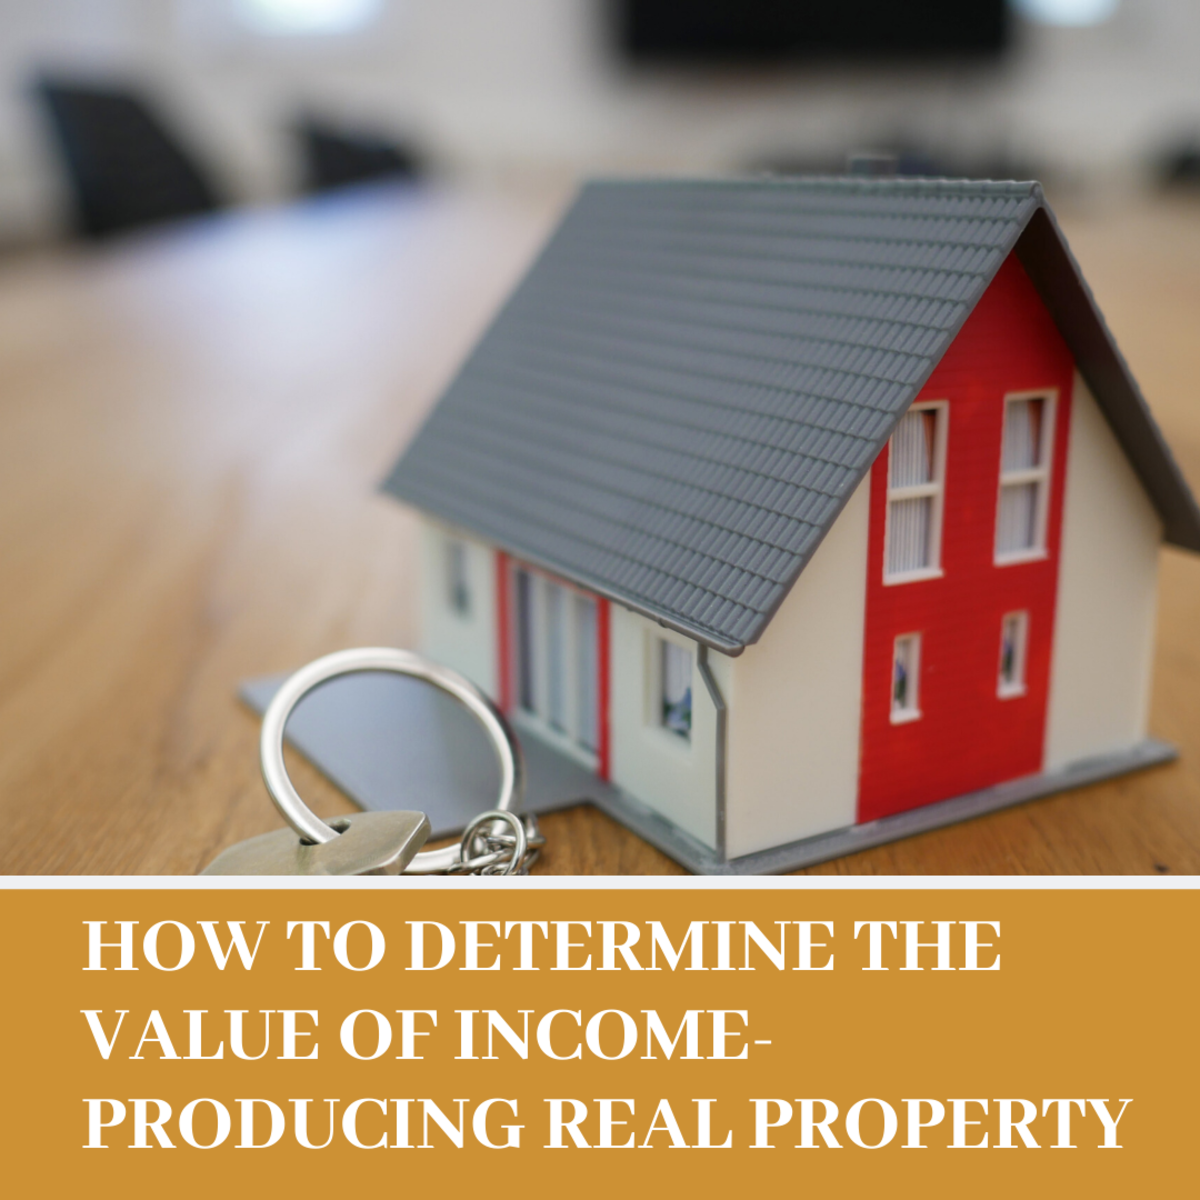 Read on to learn how to determine the value of income-producing real property.